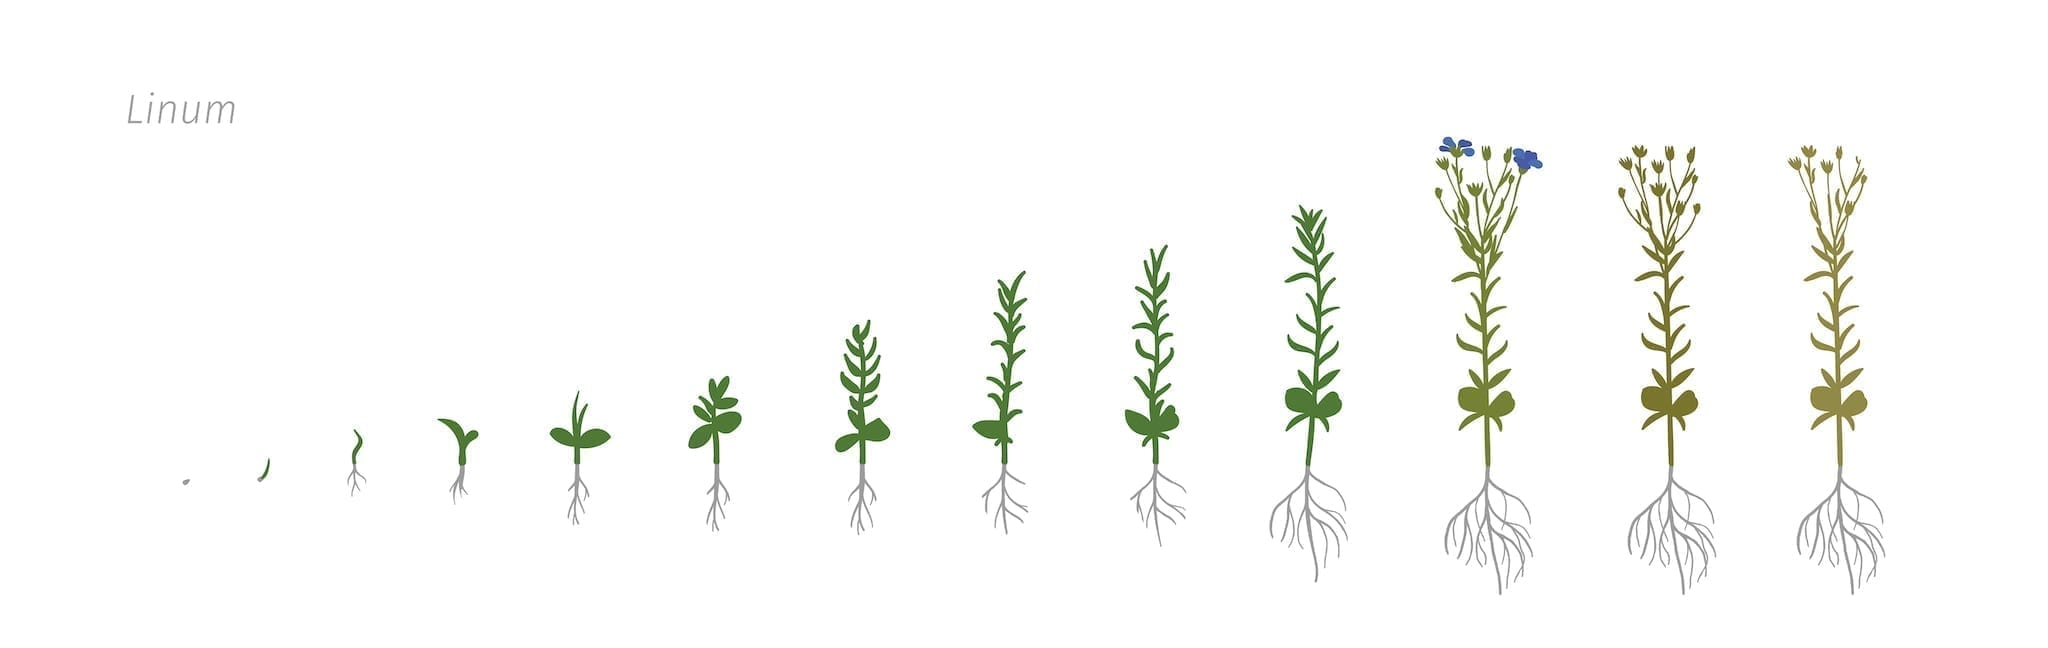 Stages of flax plant growing. Flax plant from seed to harvest.